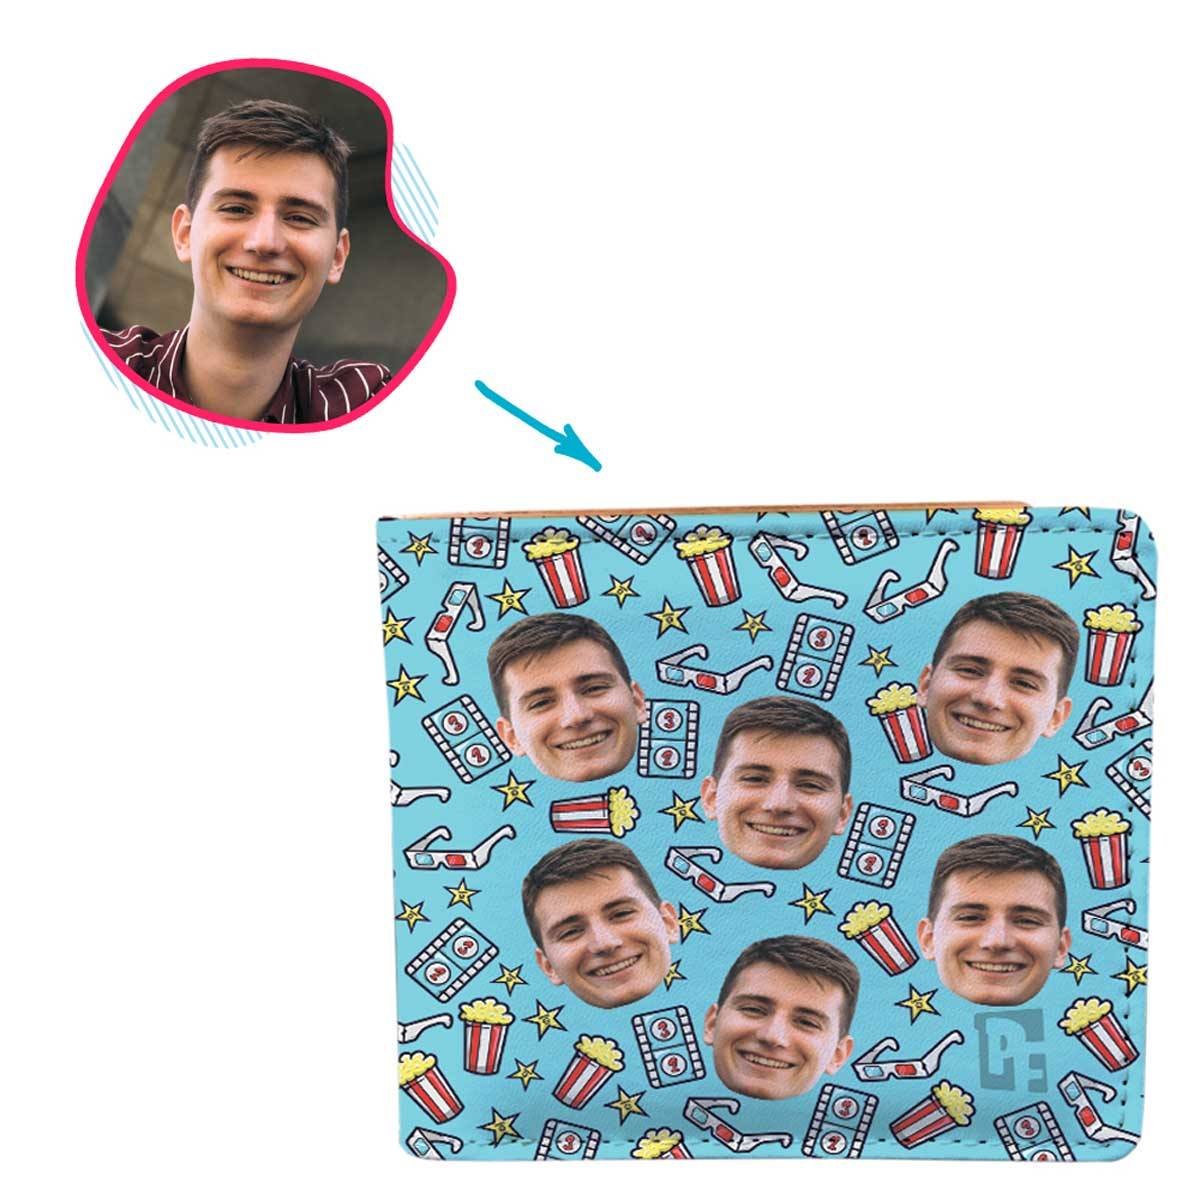 blue Movie wallet personalized with photo of face printed on it